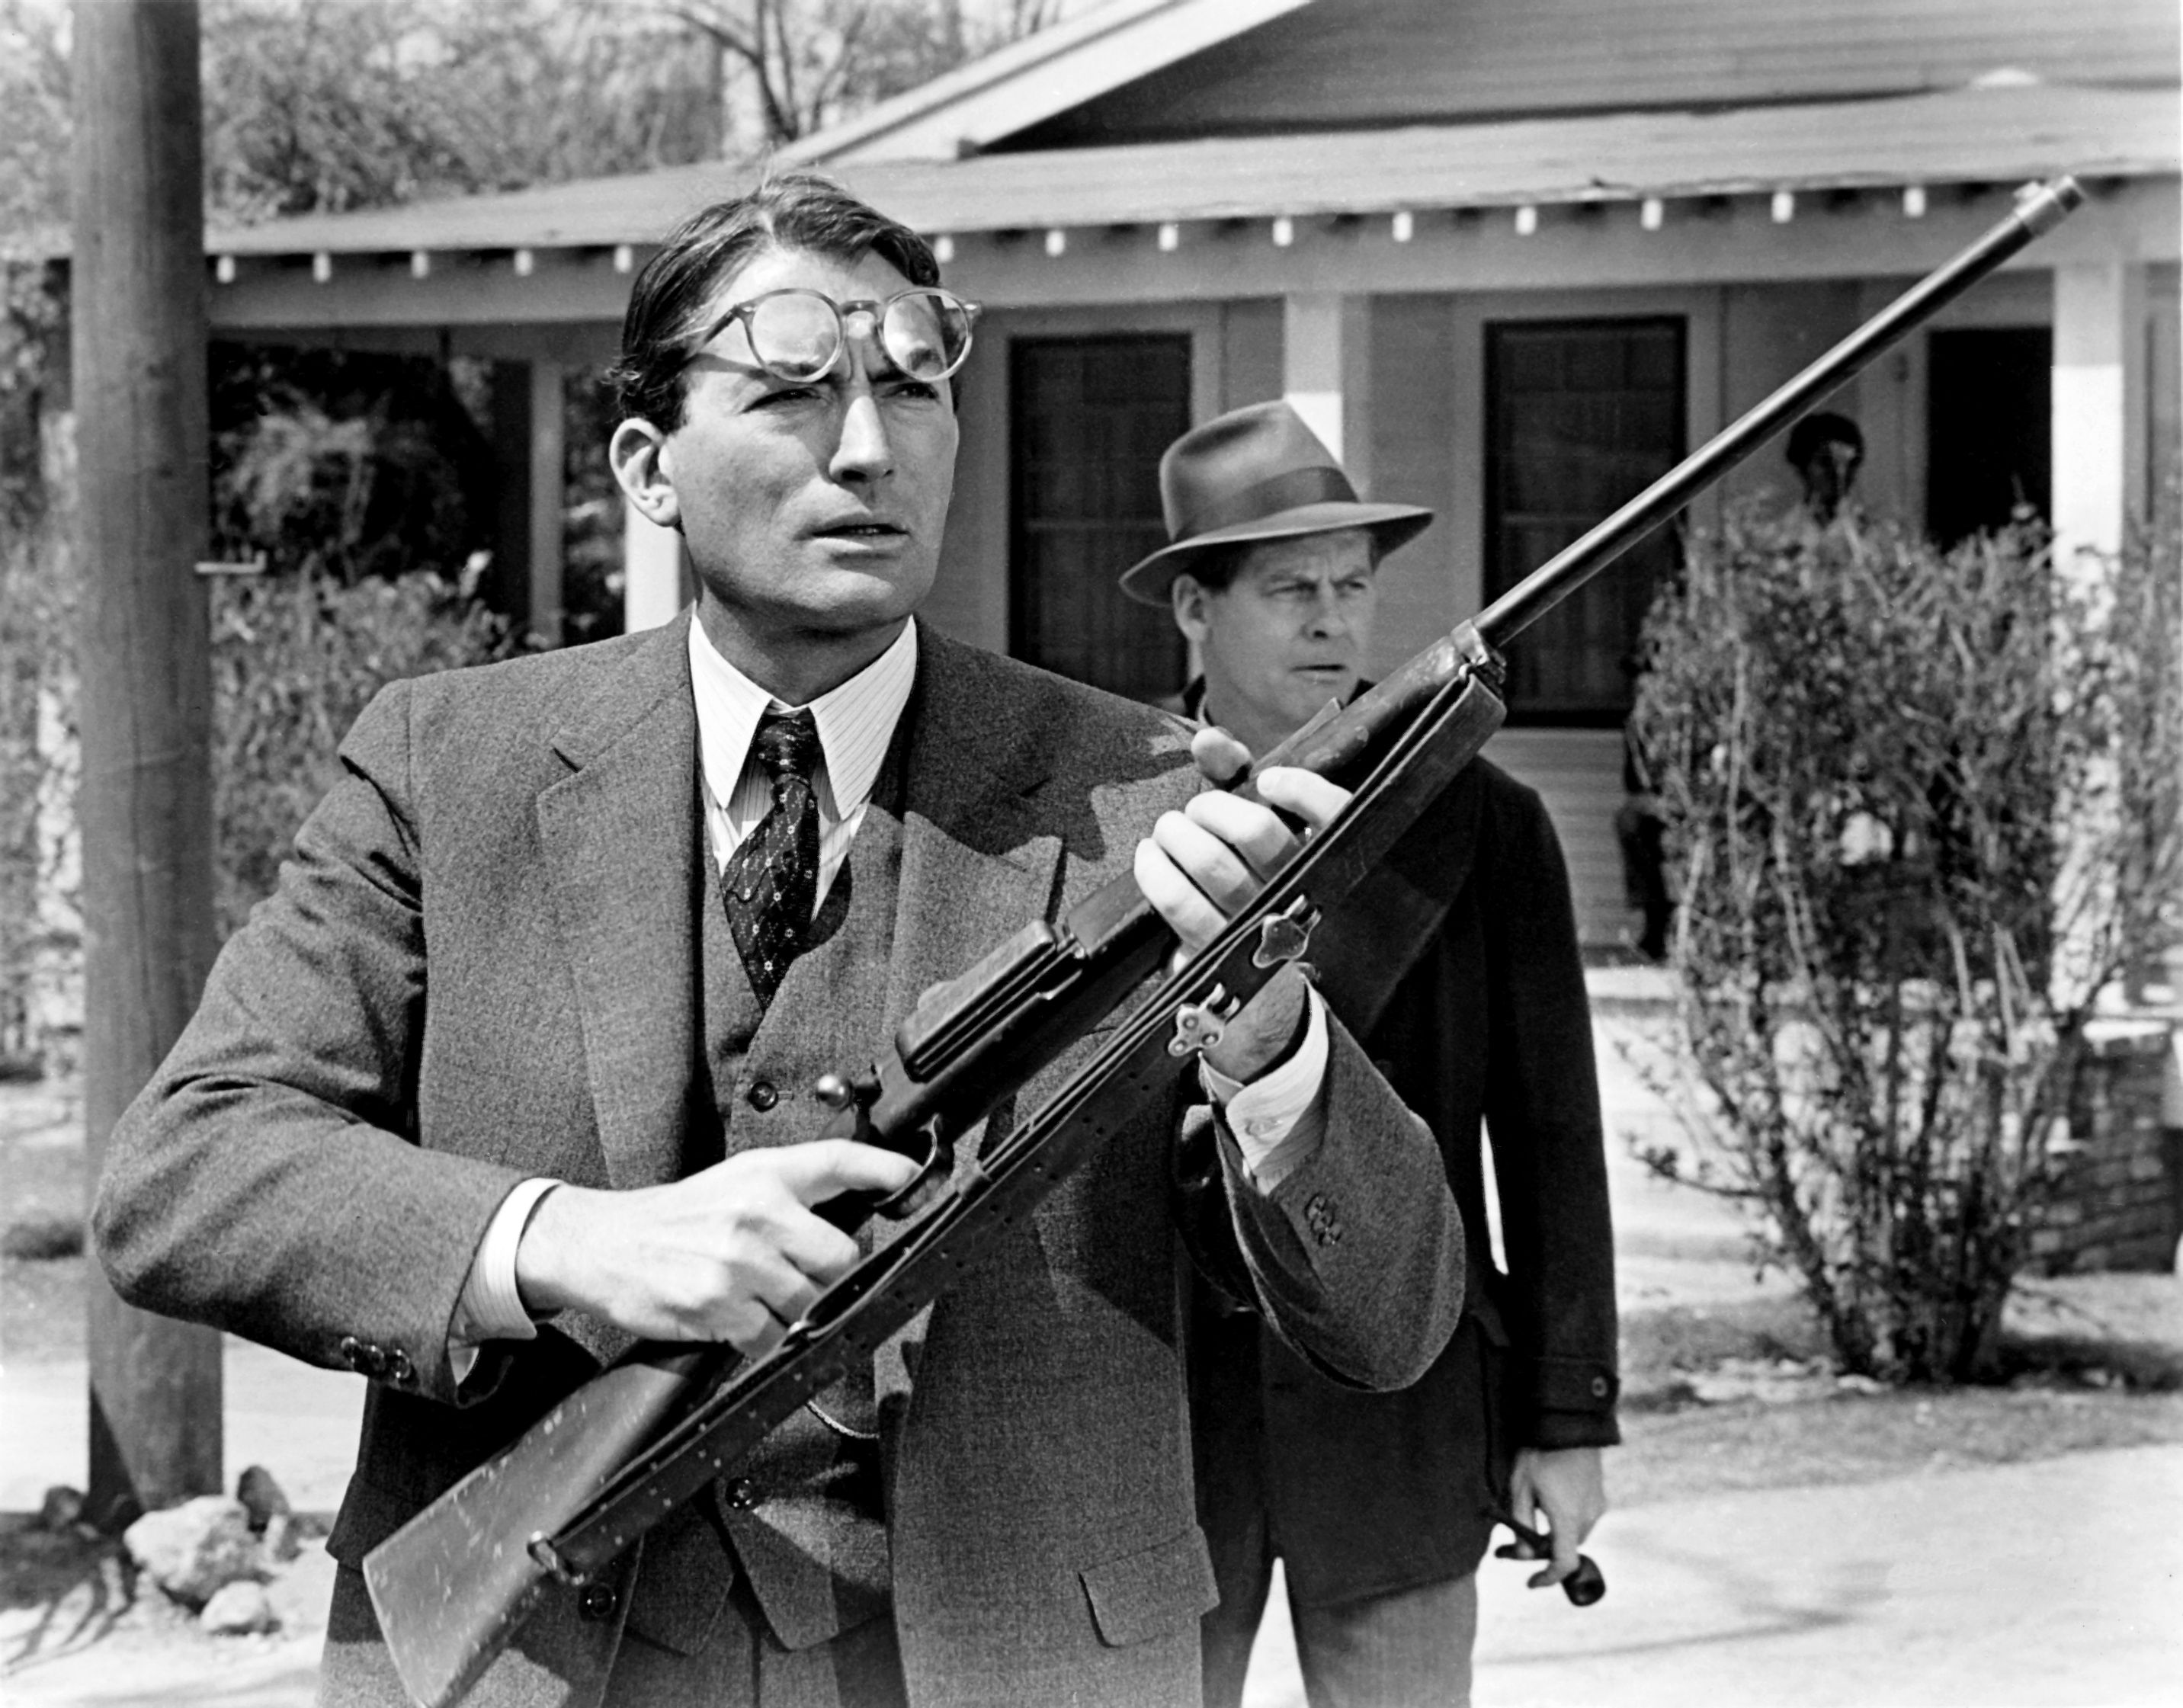 chapter take him mr finch mr tate handed the rifle to bacon radio missmirim weareourowndevils rrrick sincitycinema the 100 greatest films i ve ever seen to kill a mockingbird dir